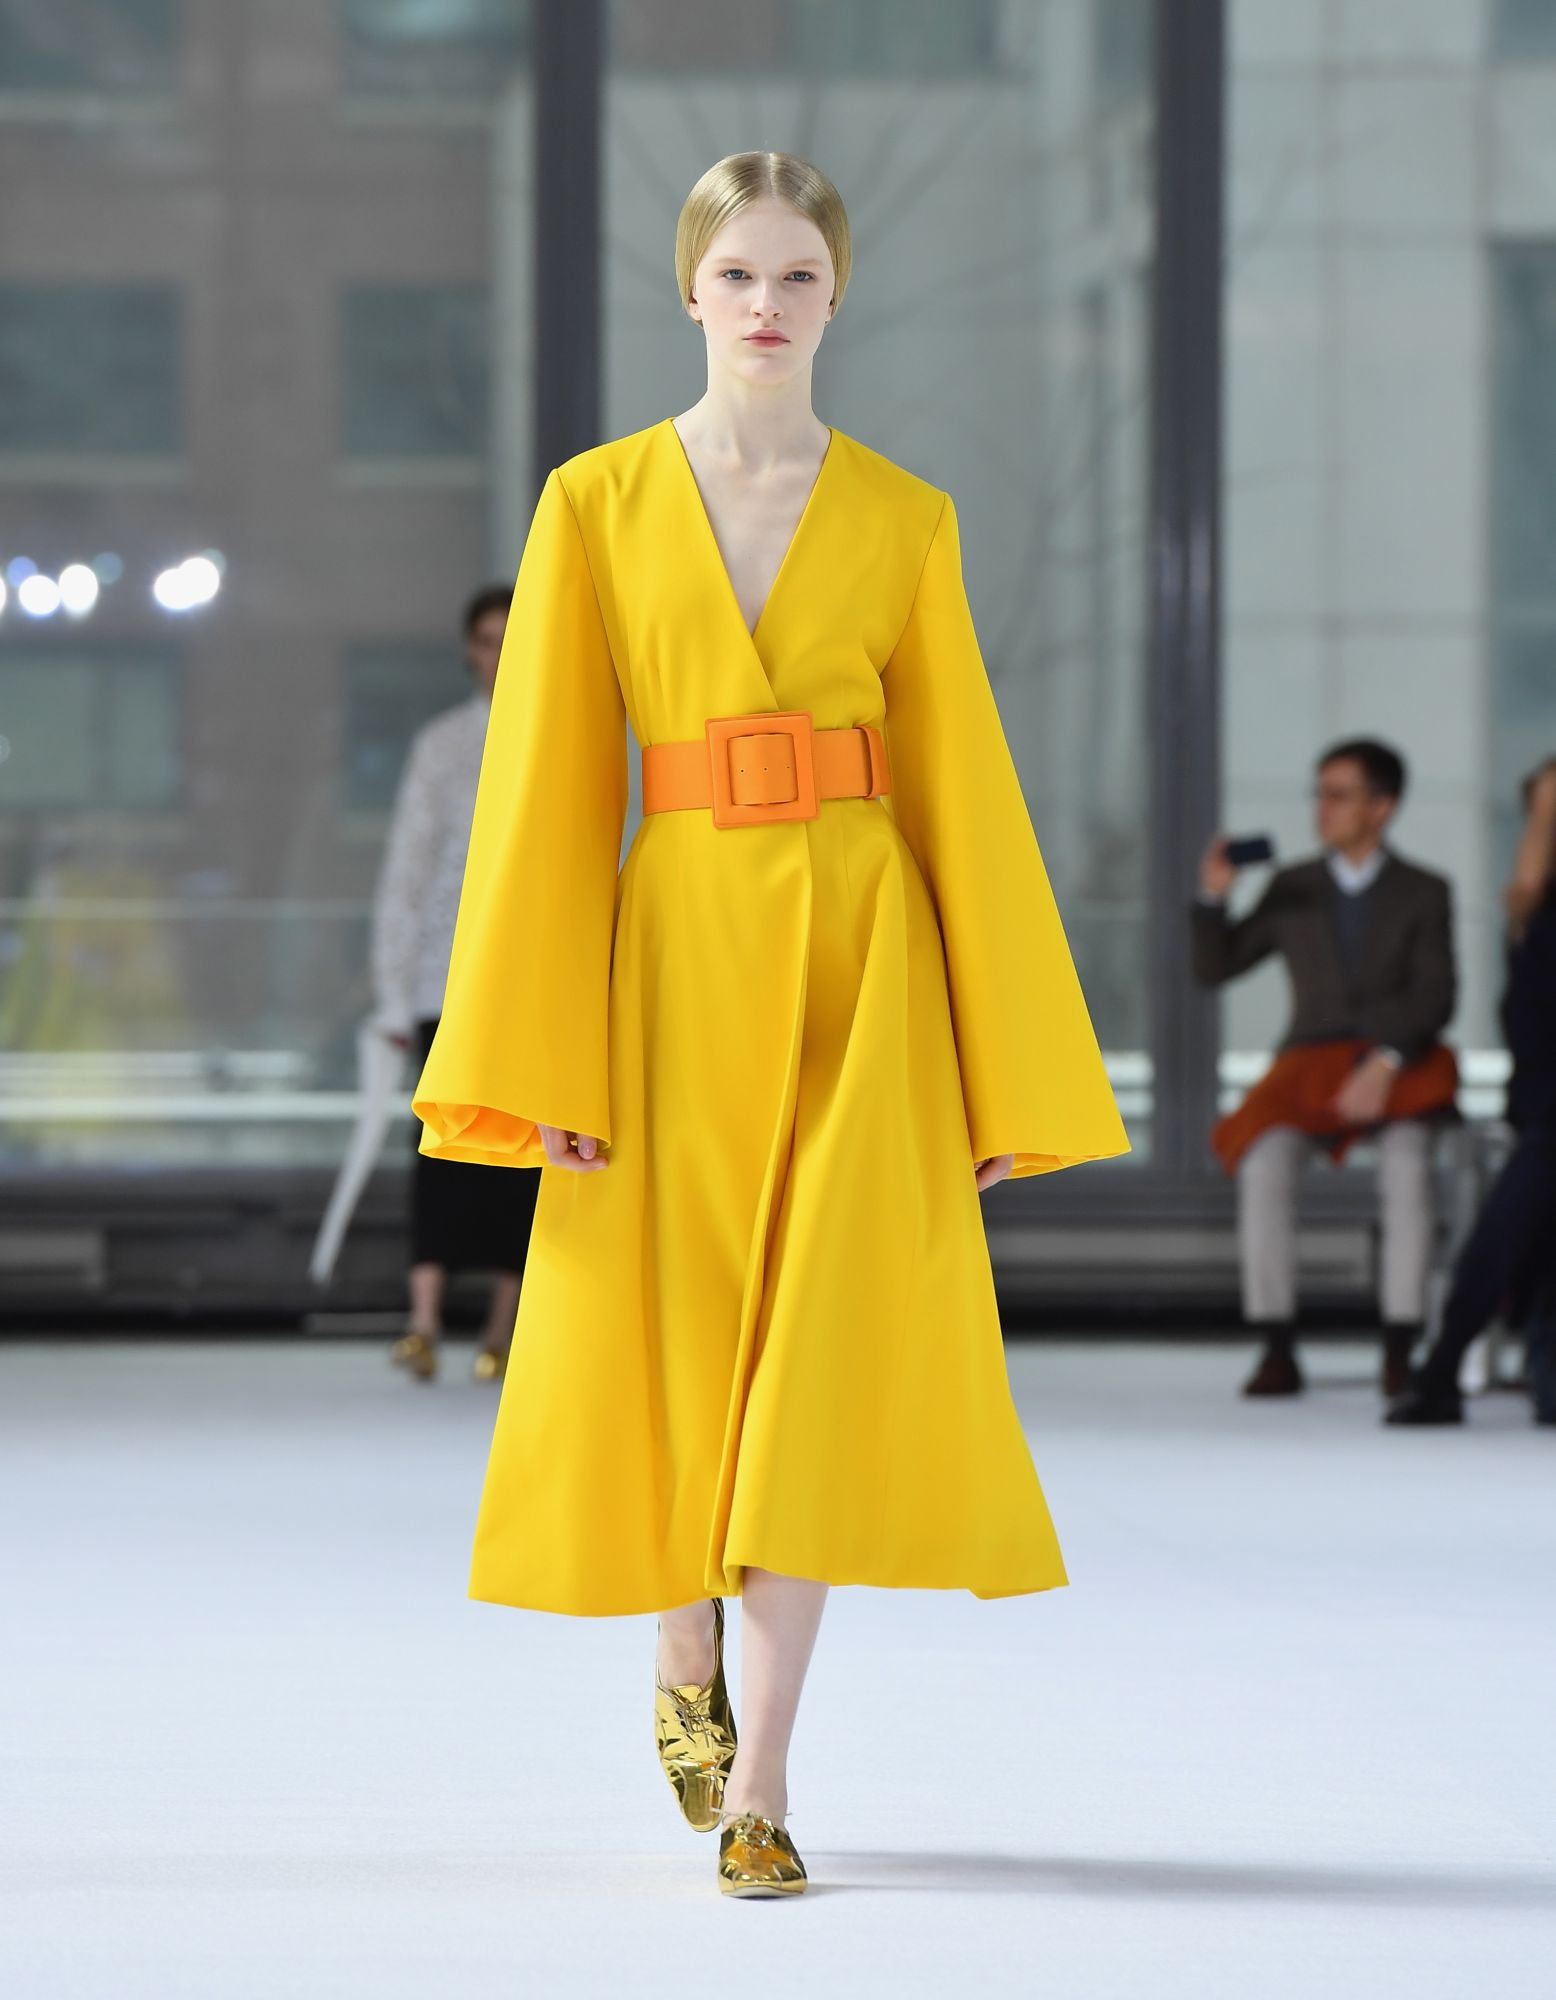 A model walks the runway for Carolina Herrera during New York Fashion Week: The Shows on February 10, 2020 in New York City. (Photo by Angela Weiss / AFP)